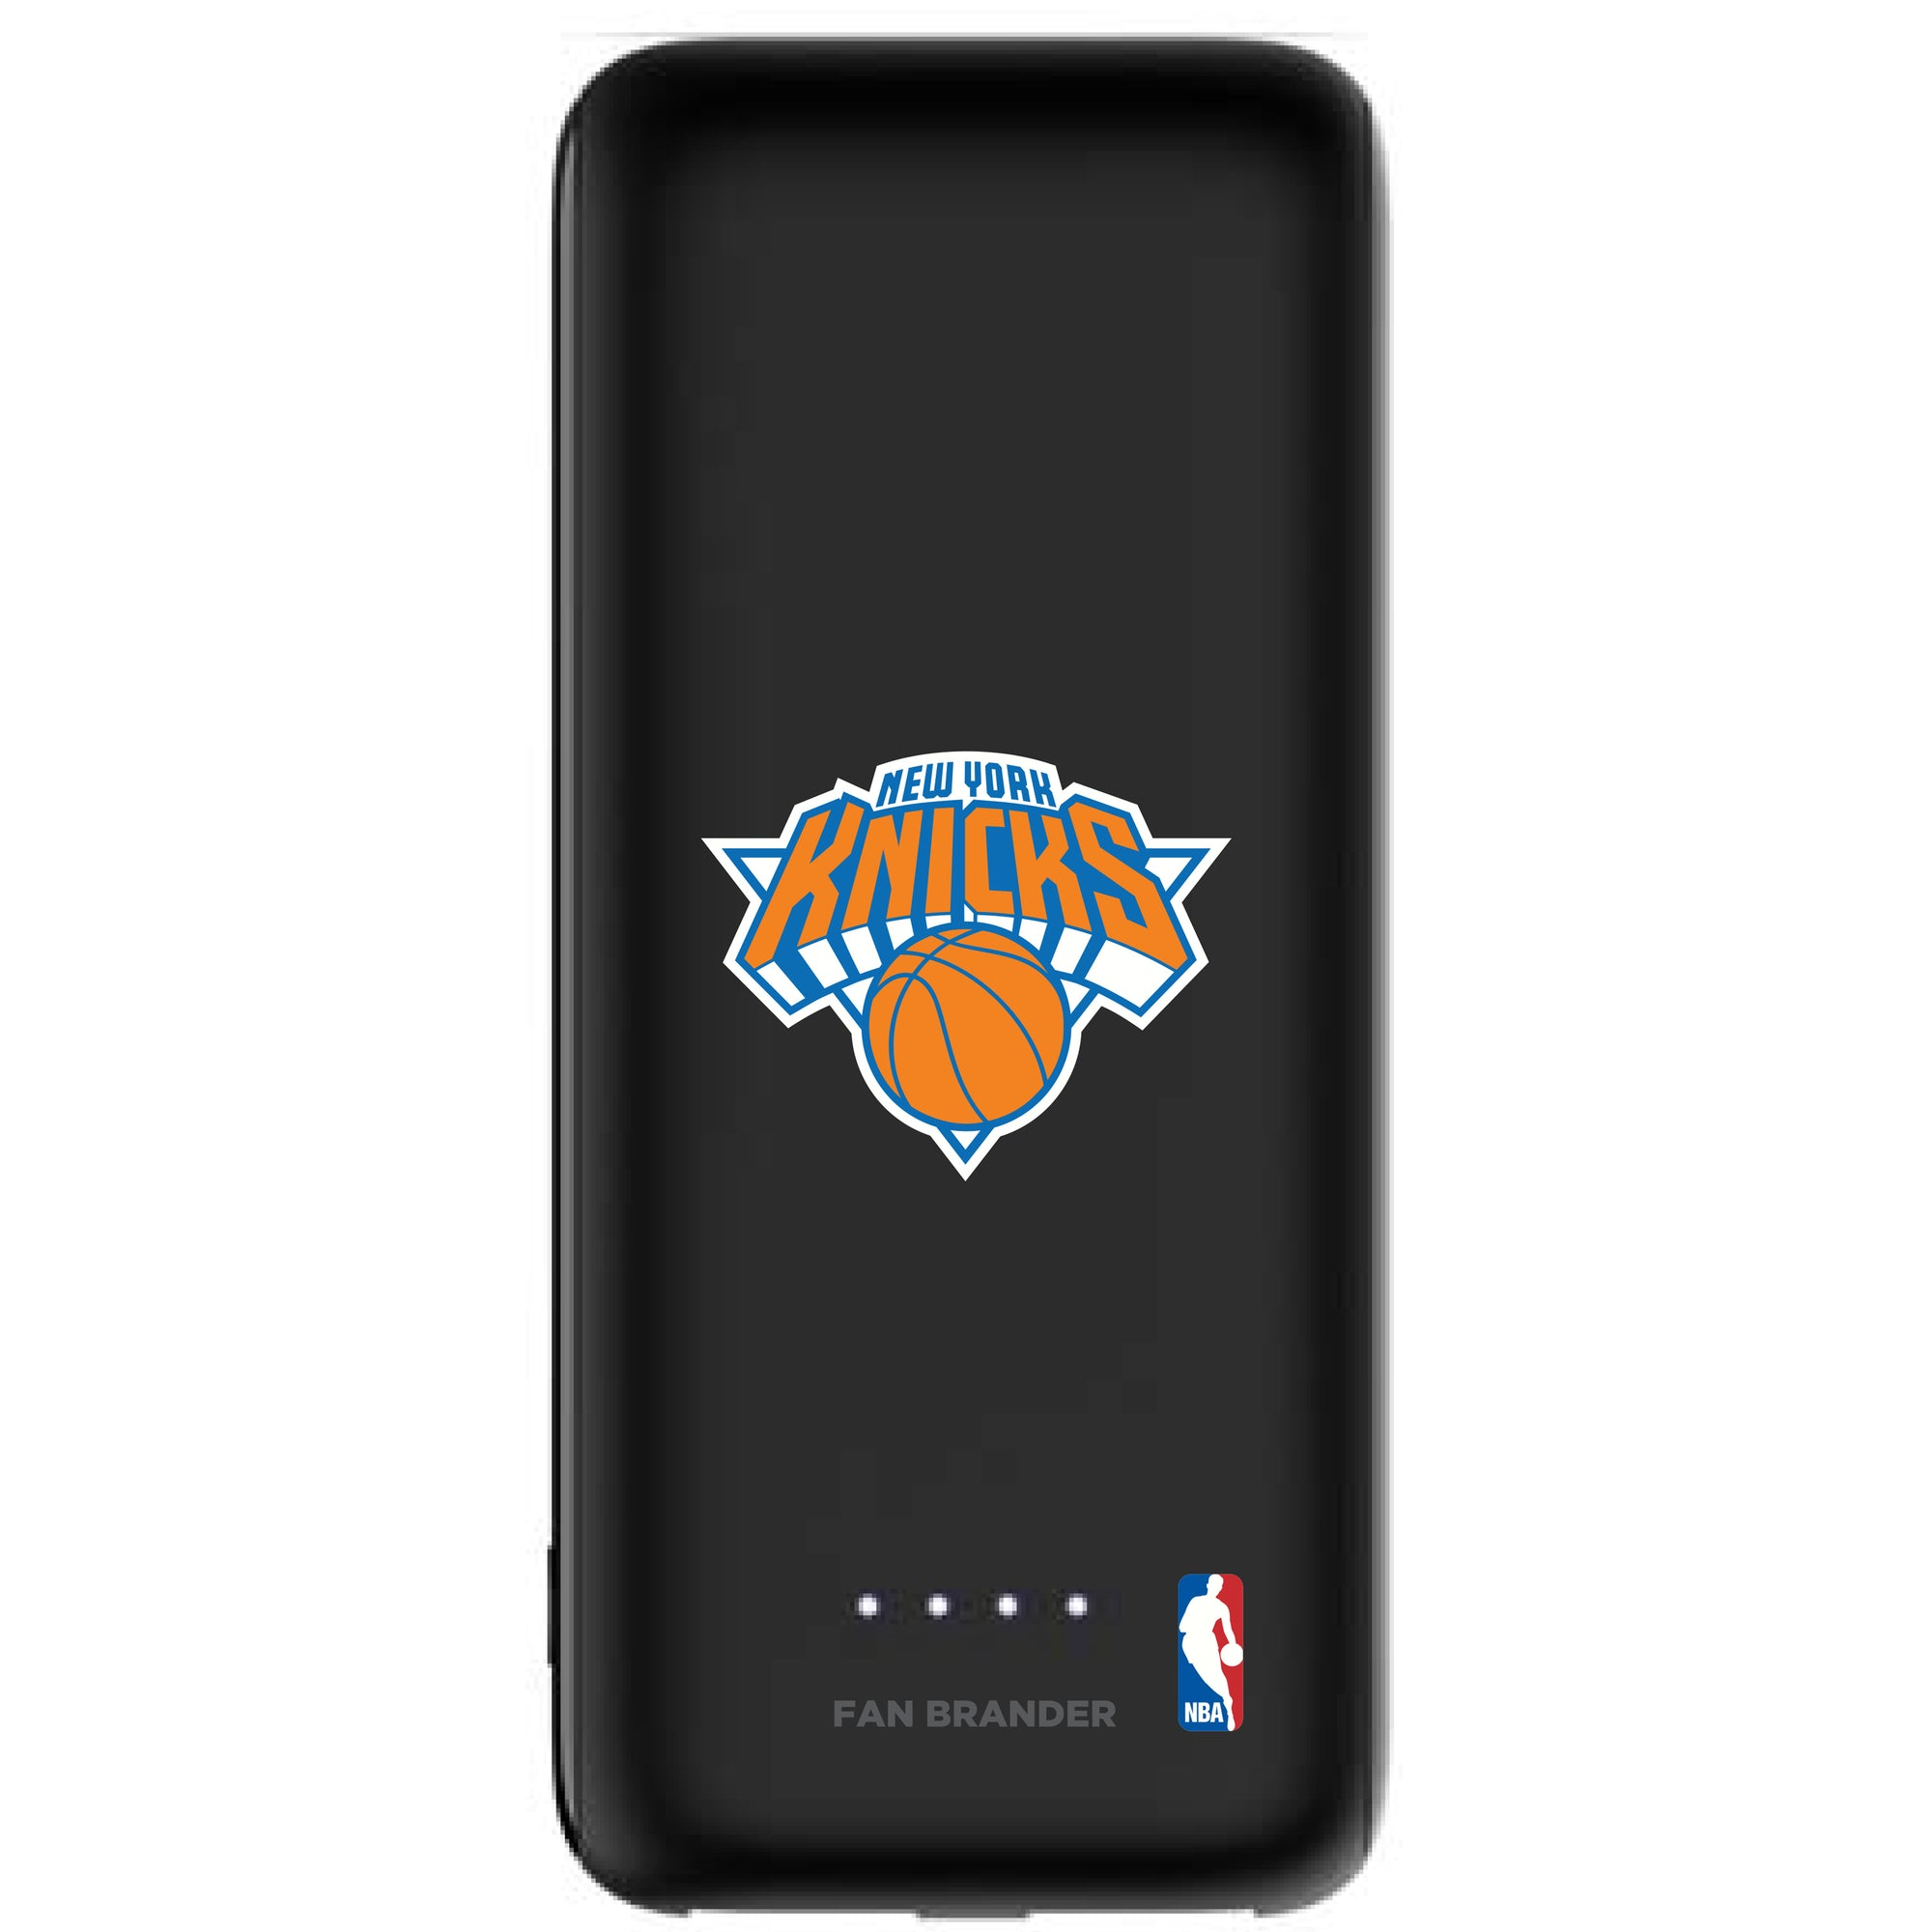 New York Knicks Power Boost Mini 5,200 mAH